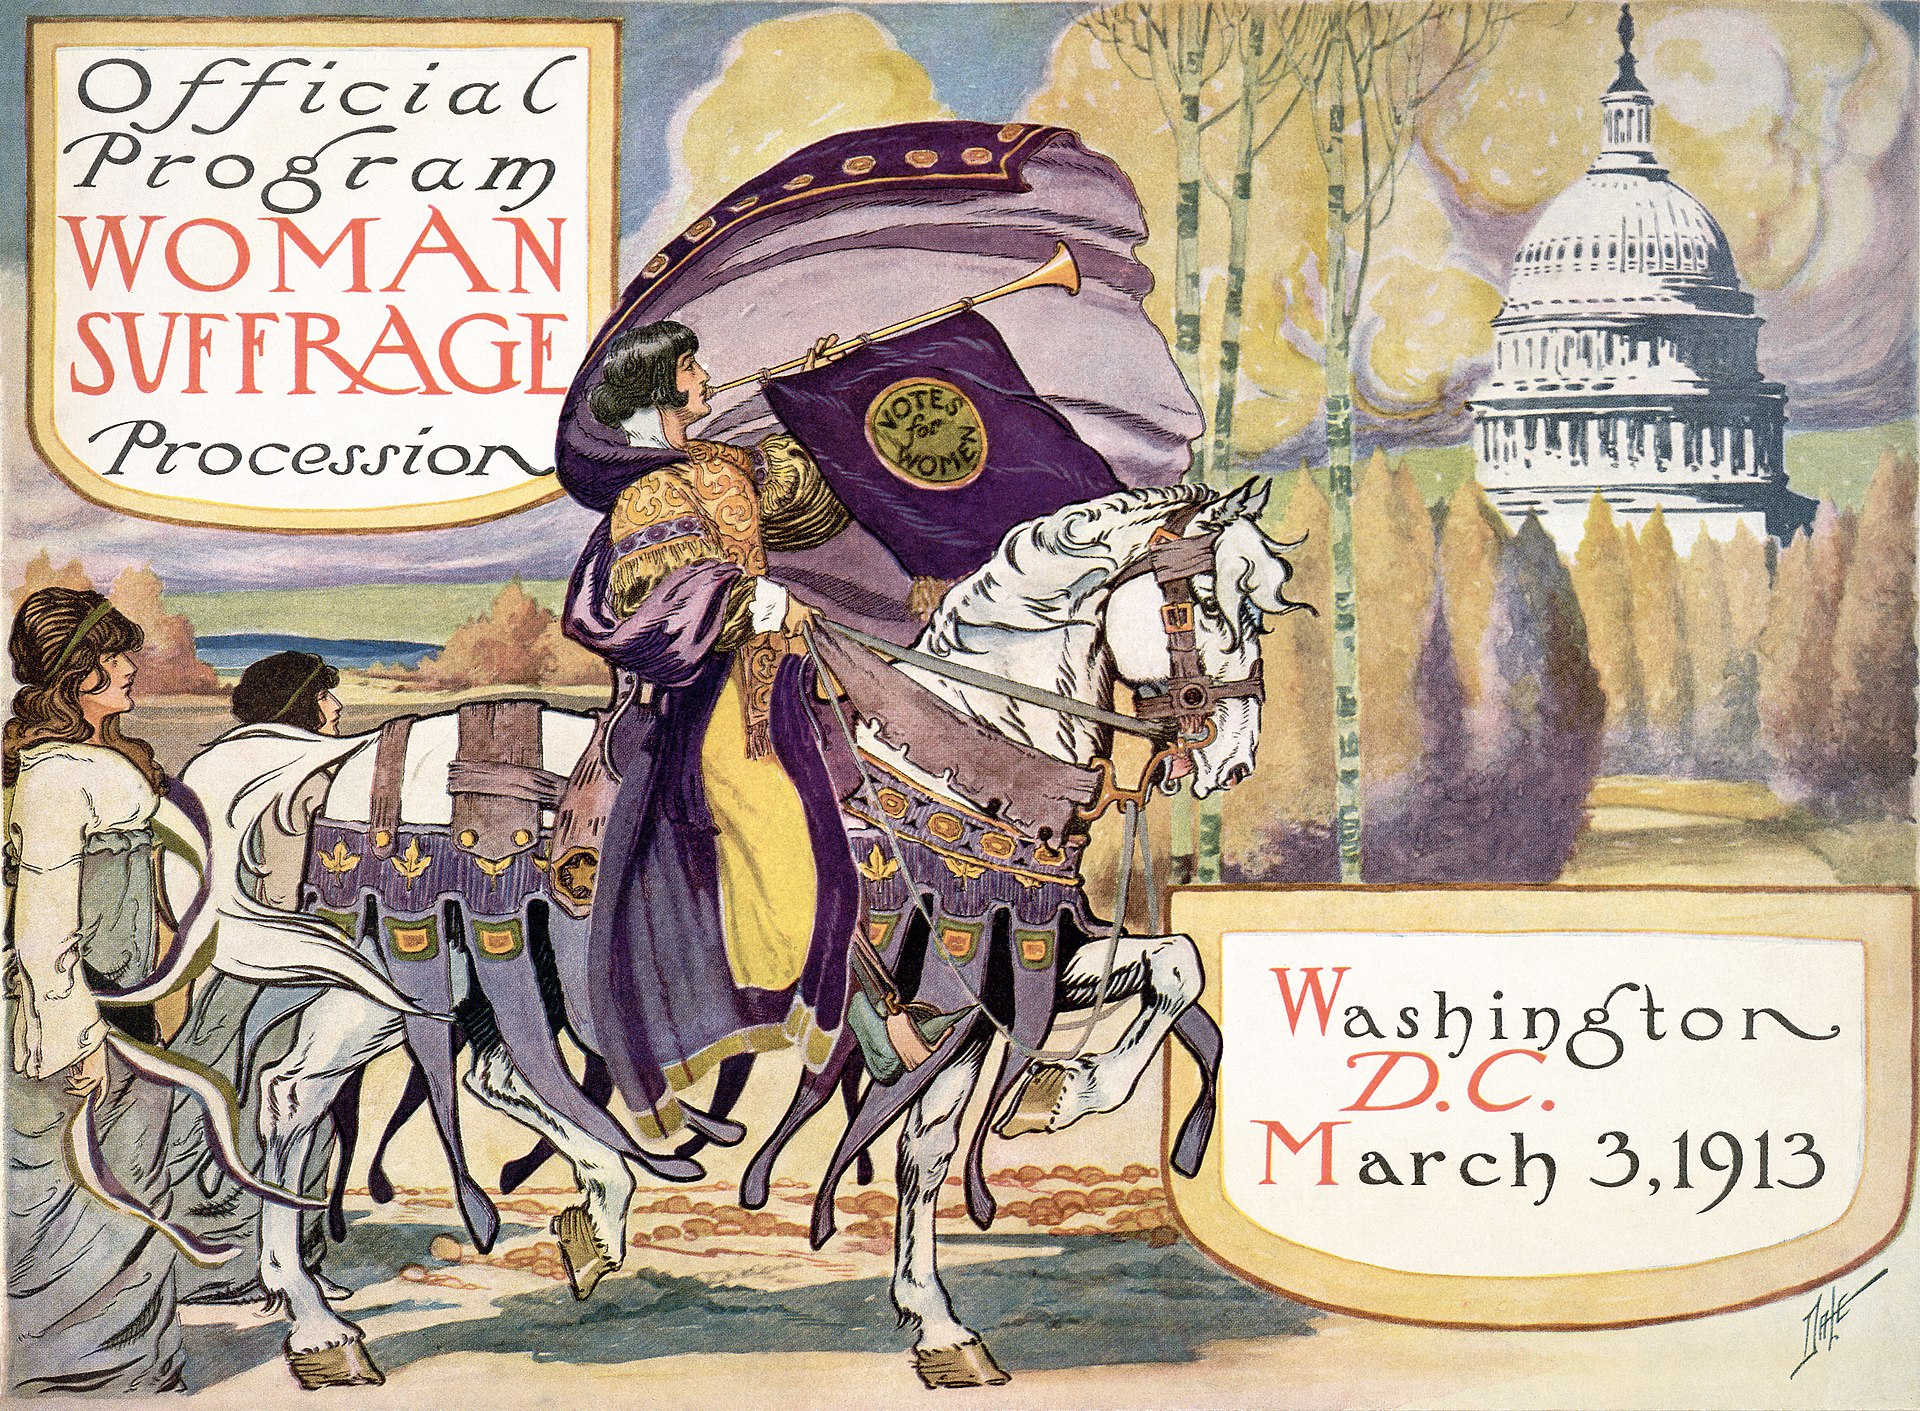 1920px-Official_Program_Woman_Suffrage_Procession_-_March_3,_1913